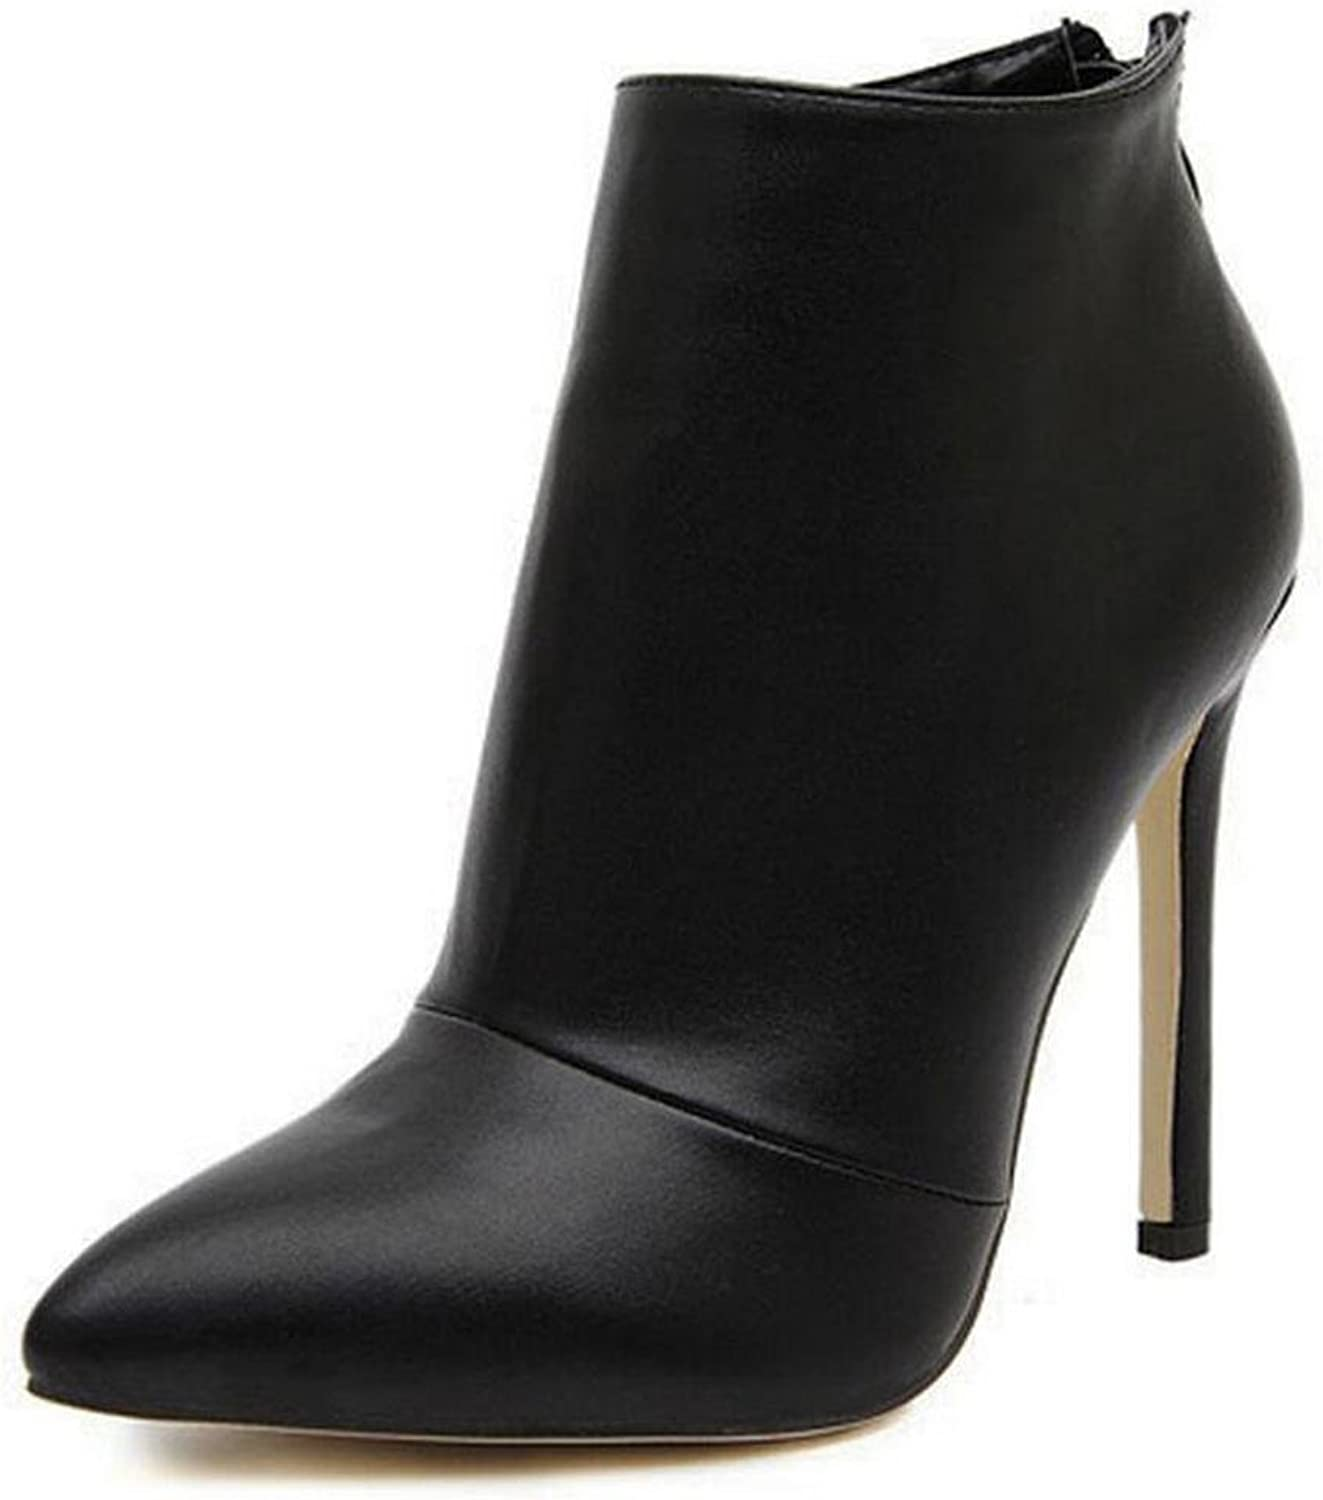 L@YC Women's High Heels Simple Glossy Zipper Pointed Boots Ankle Boots Black Red